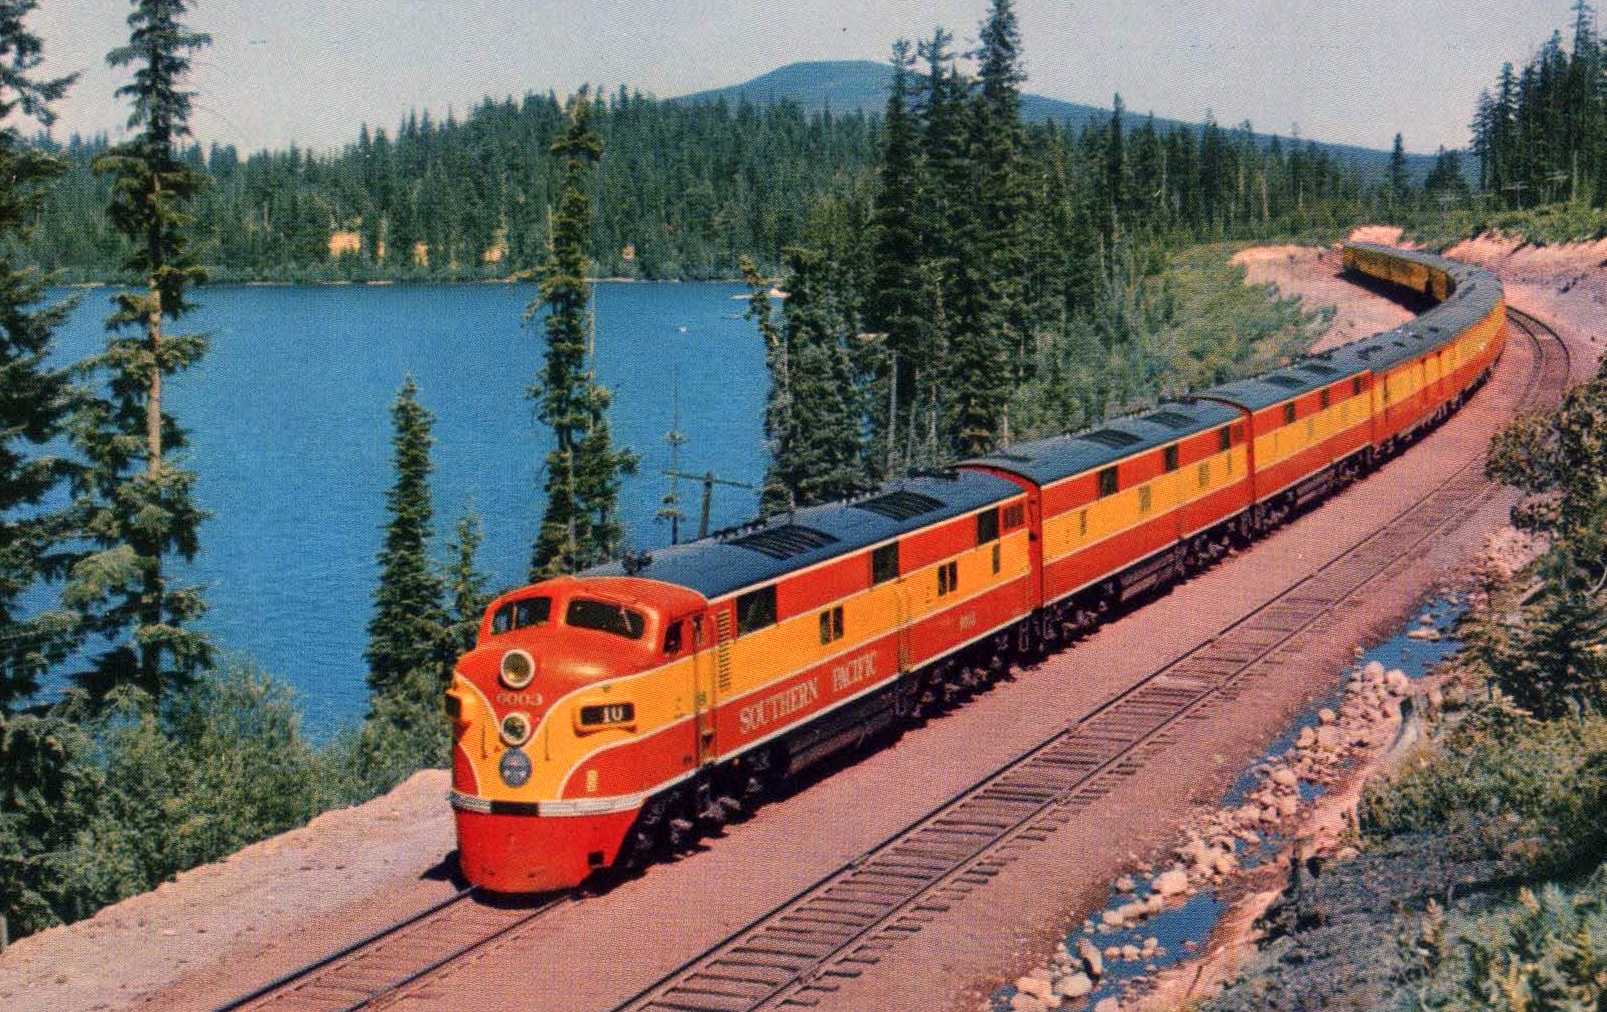 SP Shasta train.jpg